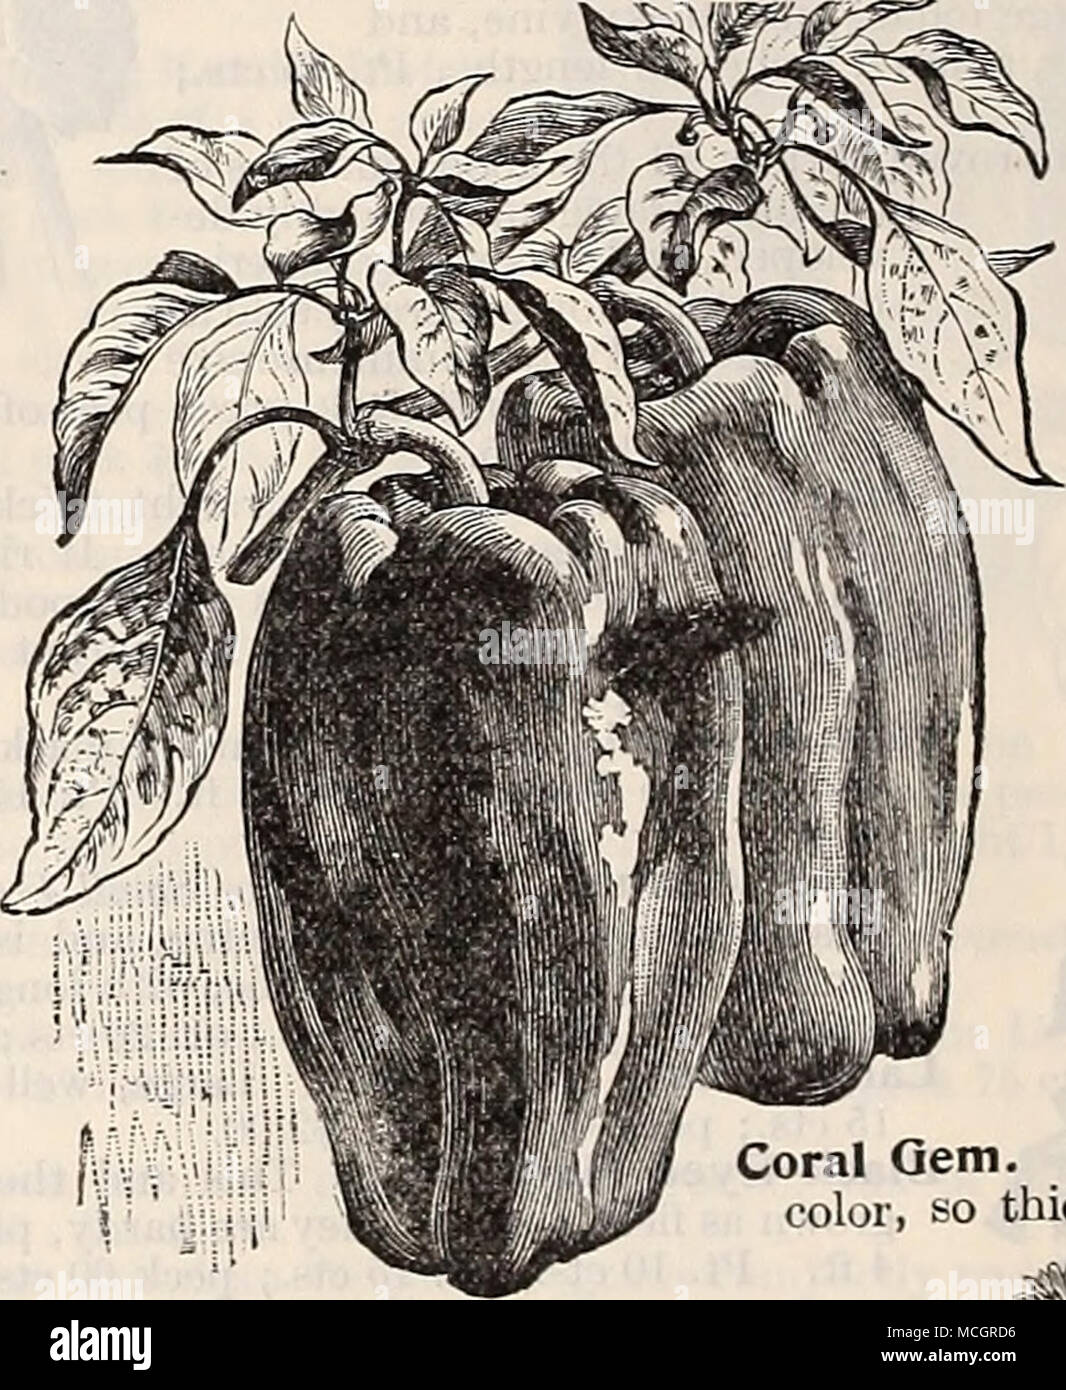 . Used for garnishing and season- ing soups, meats, etc. Succeeds best in a mellow, rich soil. Sow thickly early in April, in rows 1 foot apart and £ inch deep; thin out the plants to stand 6 inches apart in the rows. The seed is slow of germination, taking from three to four weeks to make its appearance, and often failing to come up in dry weather. To as- sist its coming up quicker, soak the seed a few hours in warm water, or sprout in damp earth, and sow when it swells or bursts. For winter use protect in a frame or light cellar. Ruby King Pepper. Half Curled. A medium curled variety for gar - Stock Image